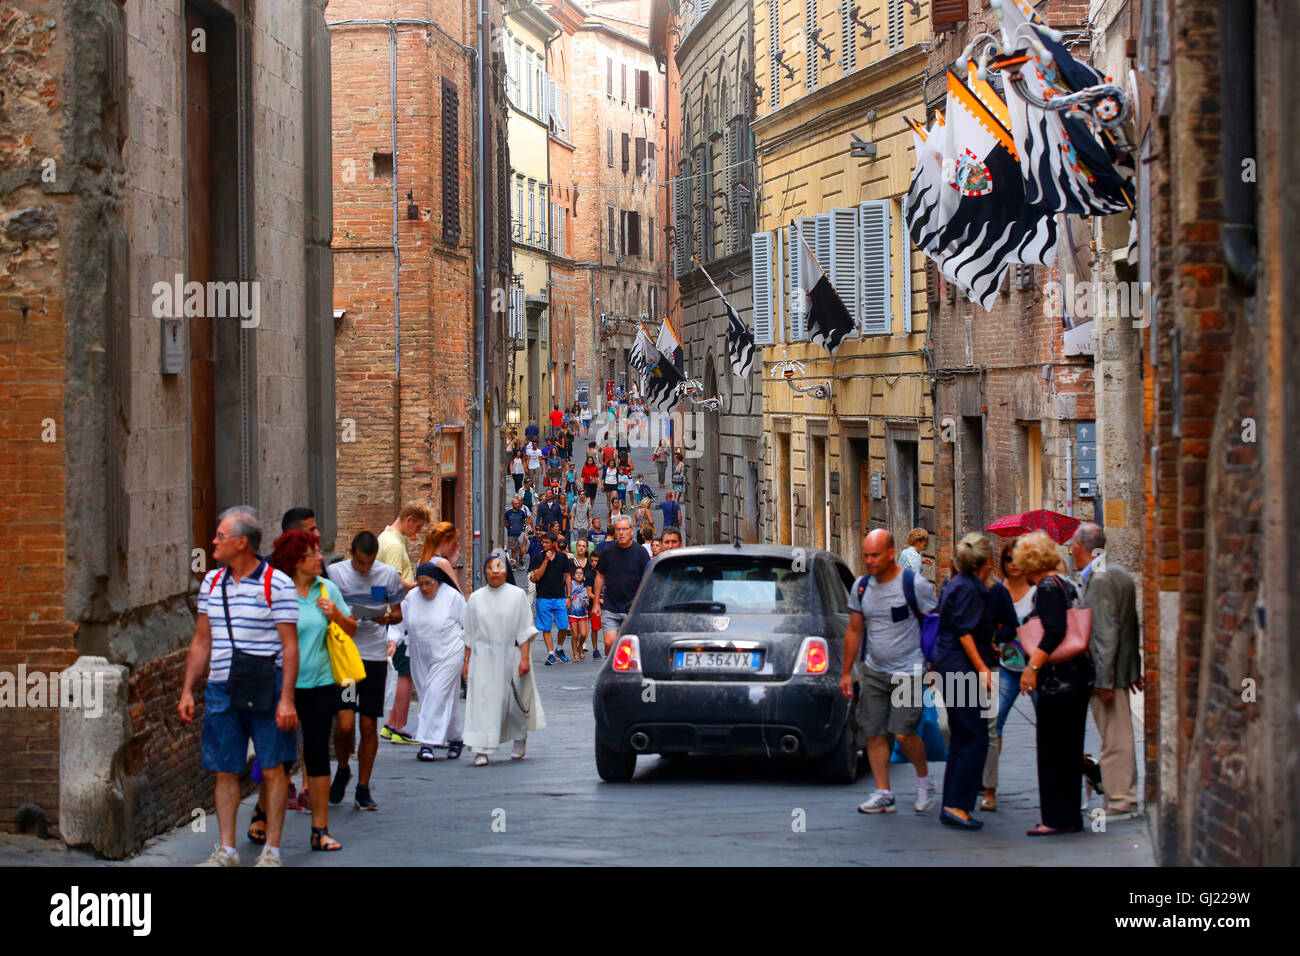 A Fiat 500 makes its way past pedestrians along Via Montanini in Siena, Italy. - Stock Image